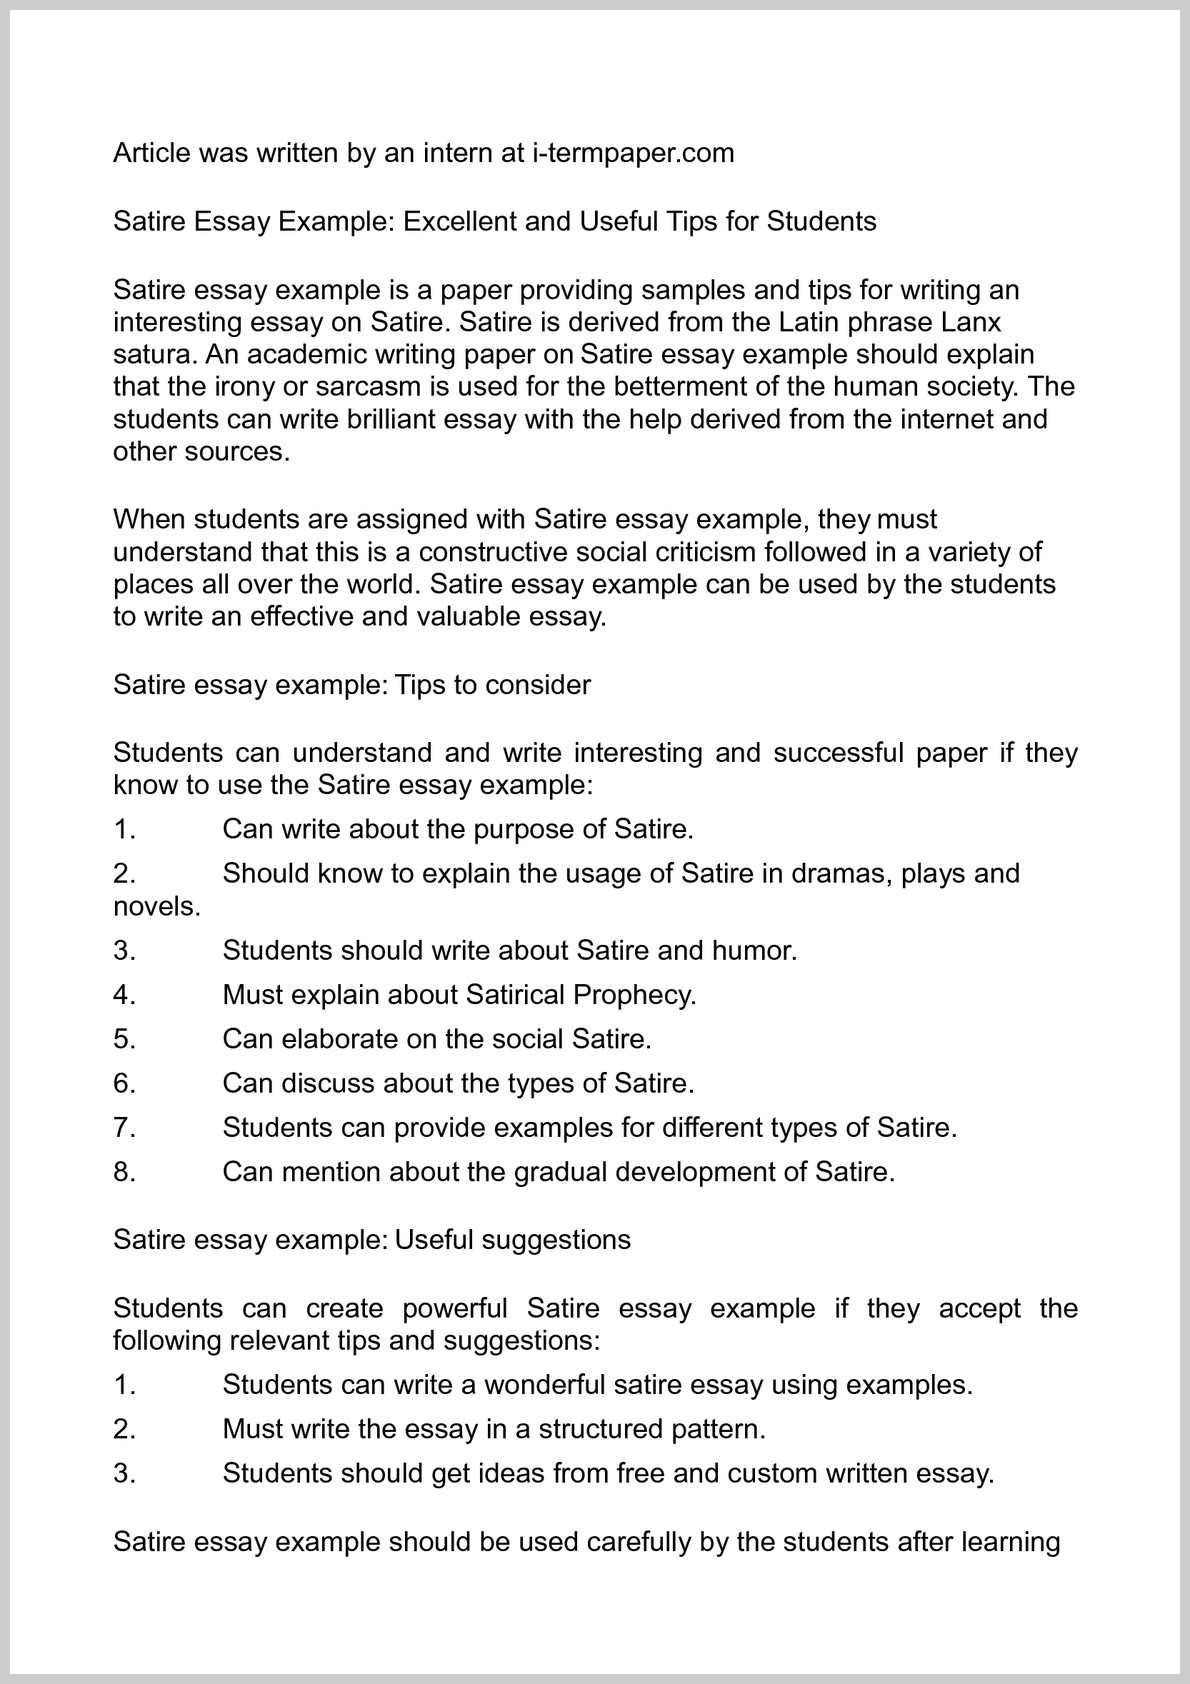 014 Essay Satiric Negative Impacts Of Social Media The Best Writing Satirical Topics Frightening Prompts Satire On Obesity Good Full